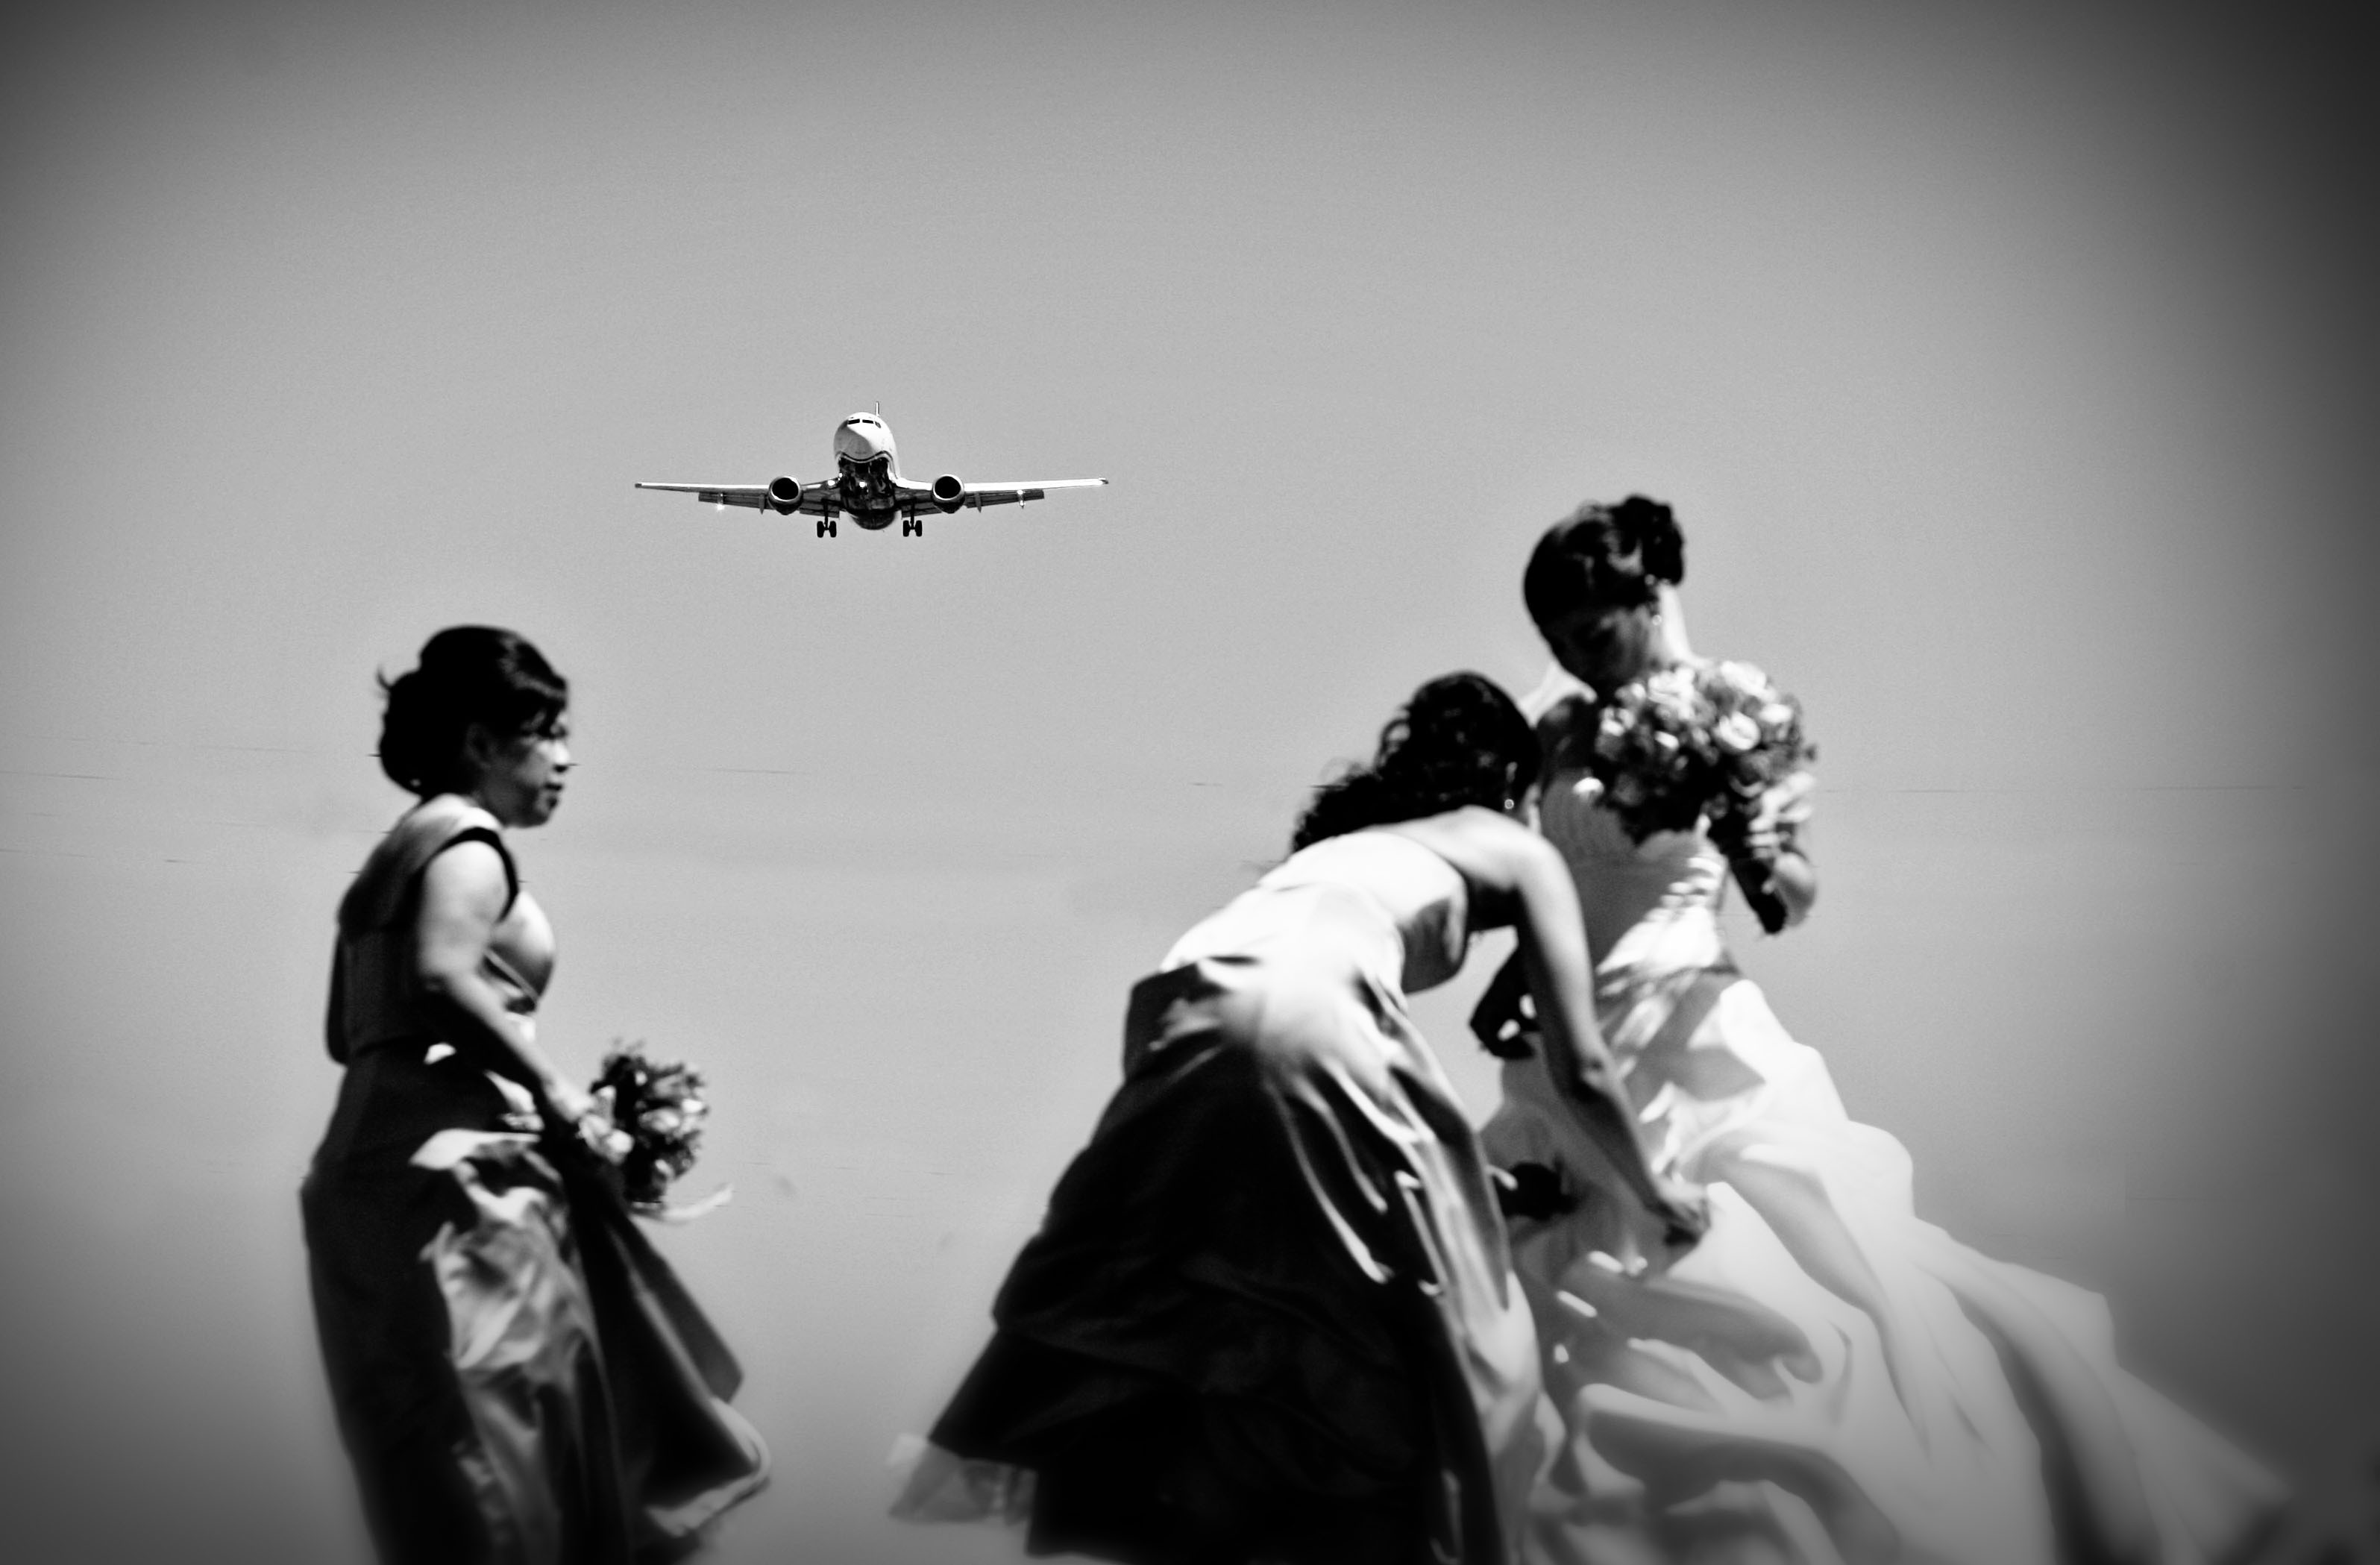 Ceremony, Flowers & Decor, Bride, Groom, Wedding, Couple, Bay area, Airplane, Michelle hayes photography, Northern california